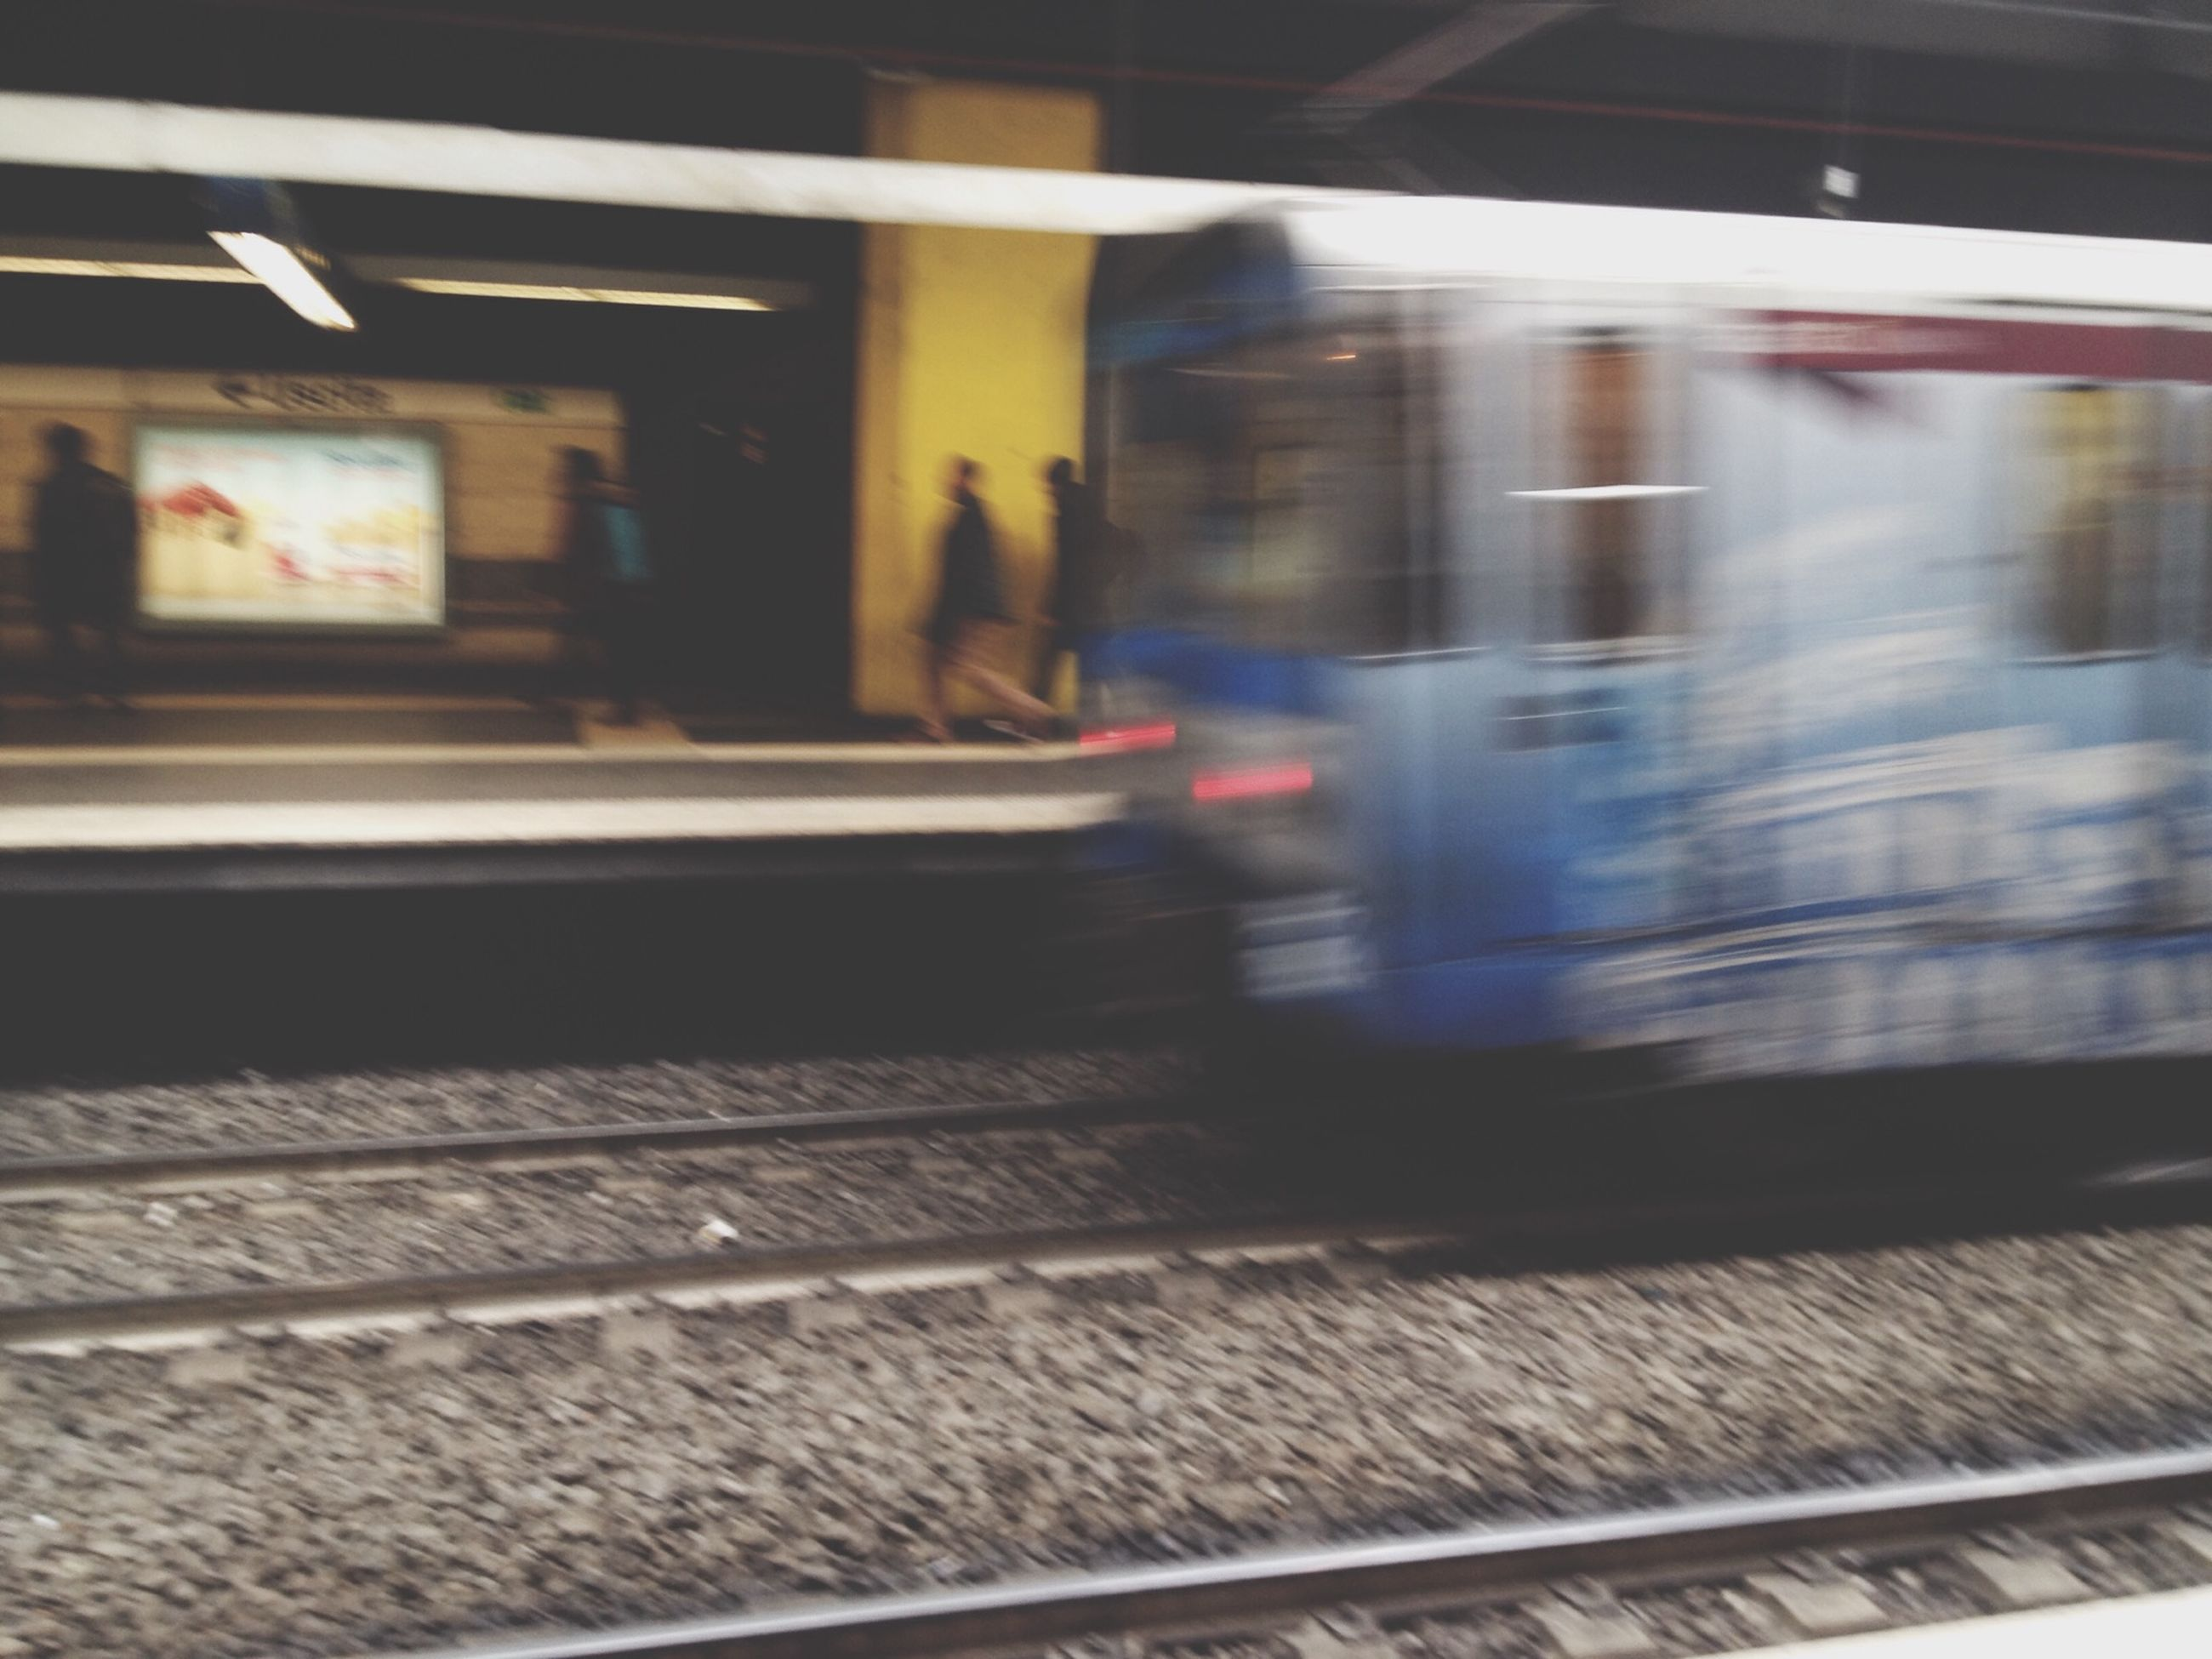 transportation, public transportation, railroad station platform, railroad track, rail transportation, railroad station, mode of transport, train - vehicle, travel, blurred motion, motion, passenger train, indoors, on the move, speed, subway station, train, illuminated, public transport, subway train